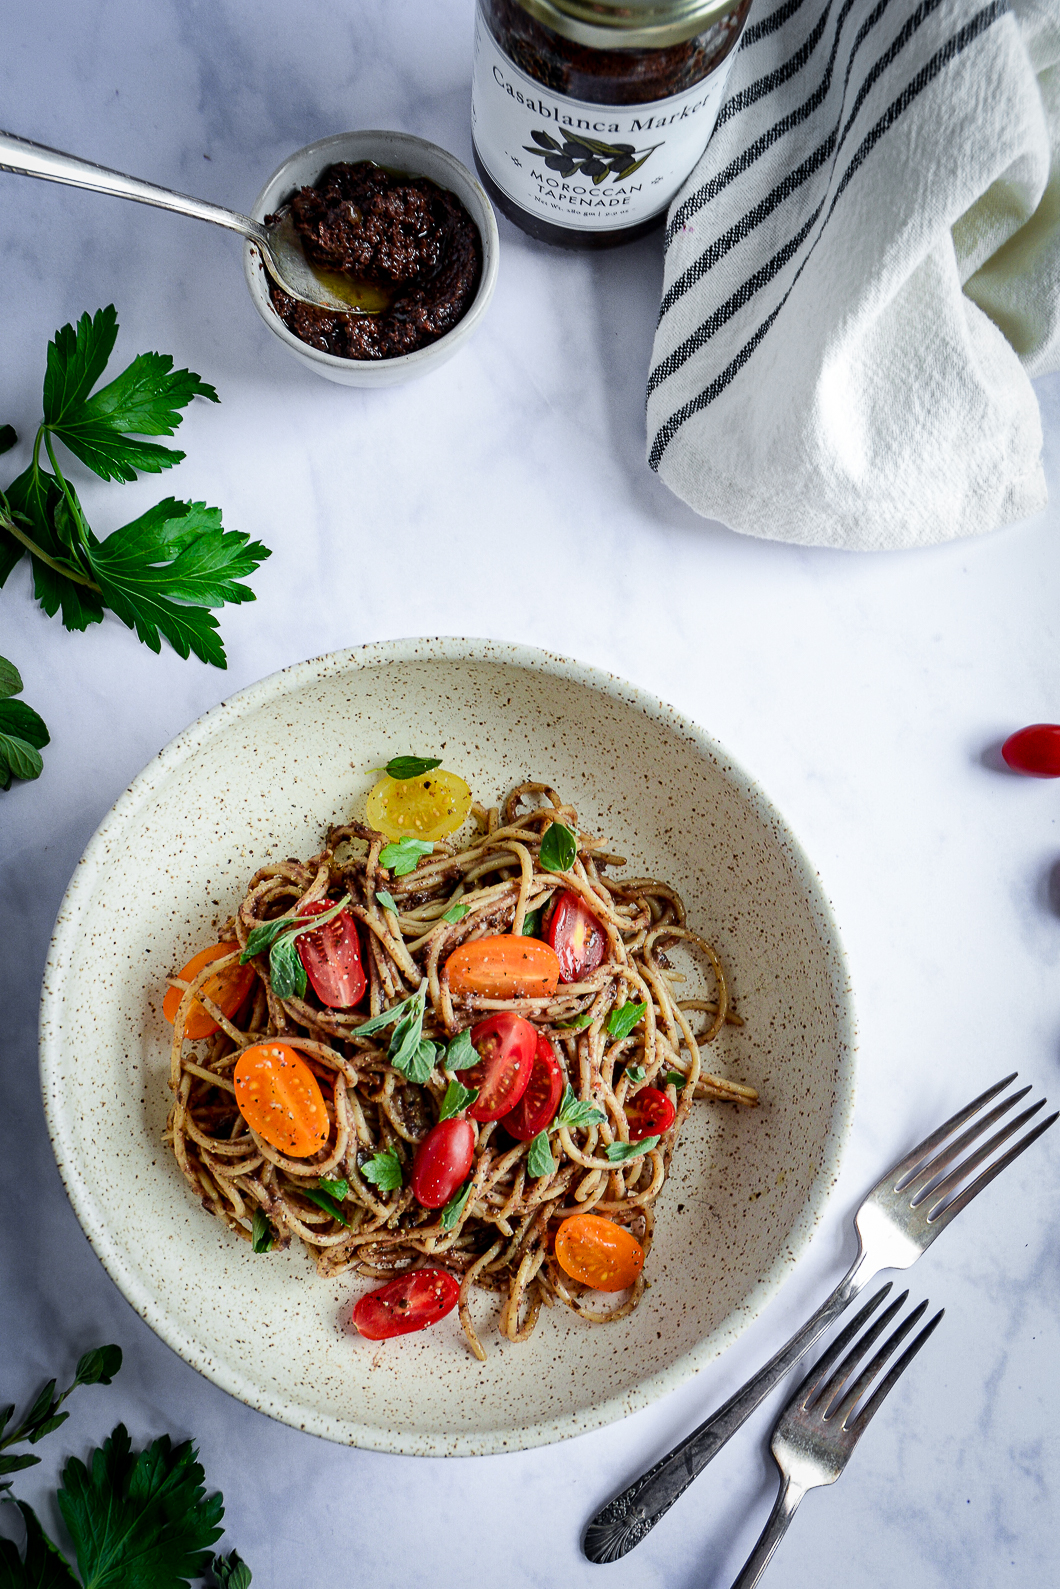 Moroccan Tapenade Spaghetti with Tomatoes and Herbs in bowl with napkin, bowl of tapenade and forks